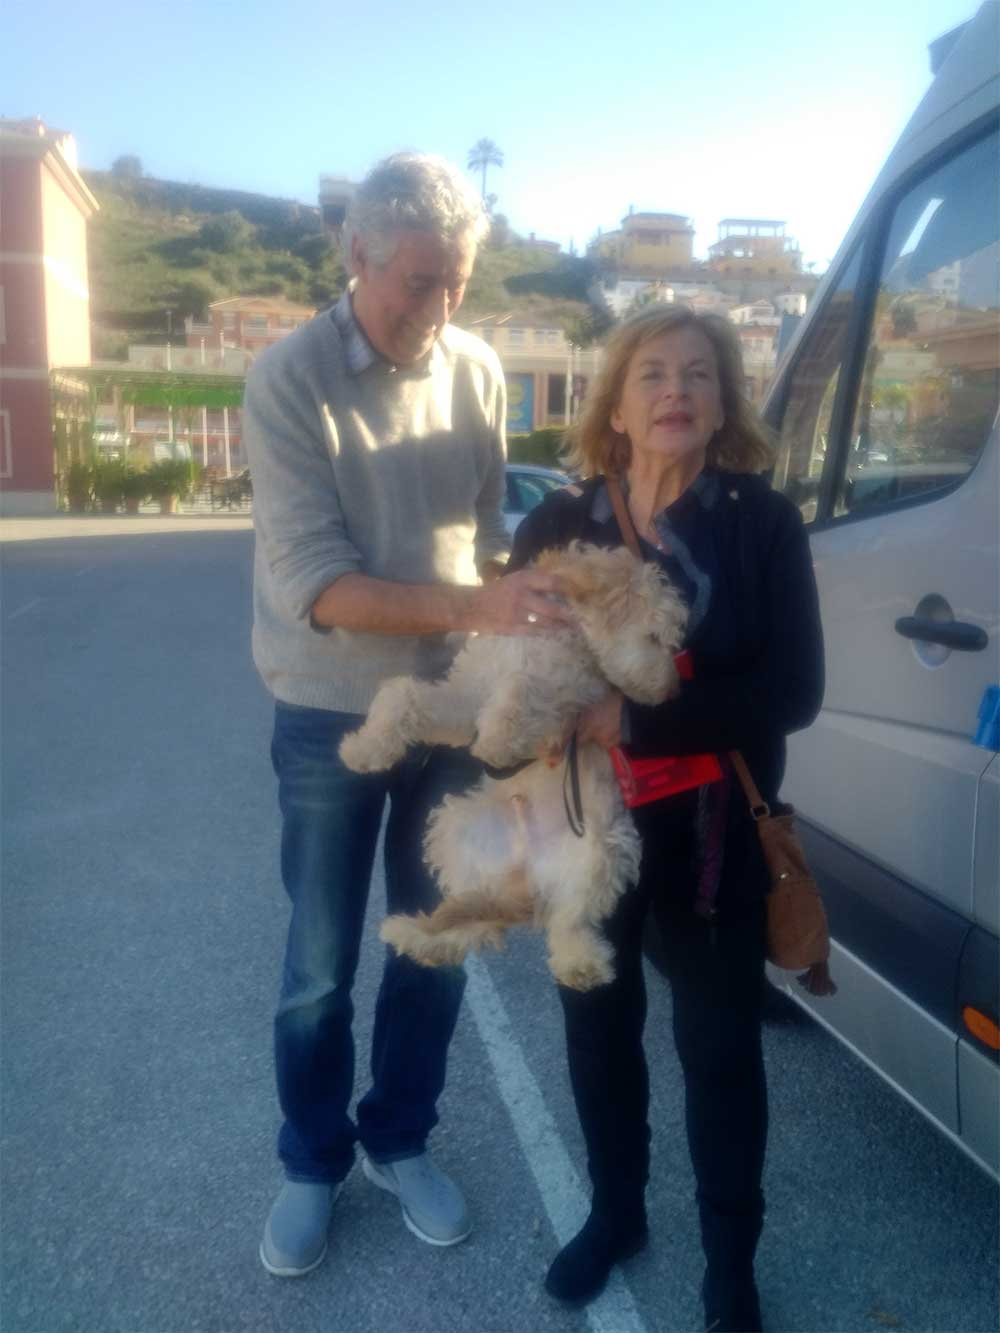 The happy event on a sunny Spanish afternoon. Bobby was too excited to sit still for a photo! Julie has trained guide dogs in the past, so will doubtless soon have him beautifully organised.